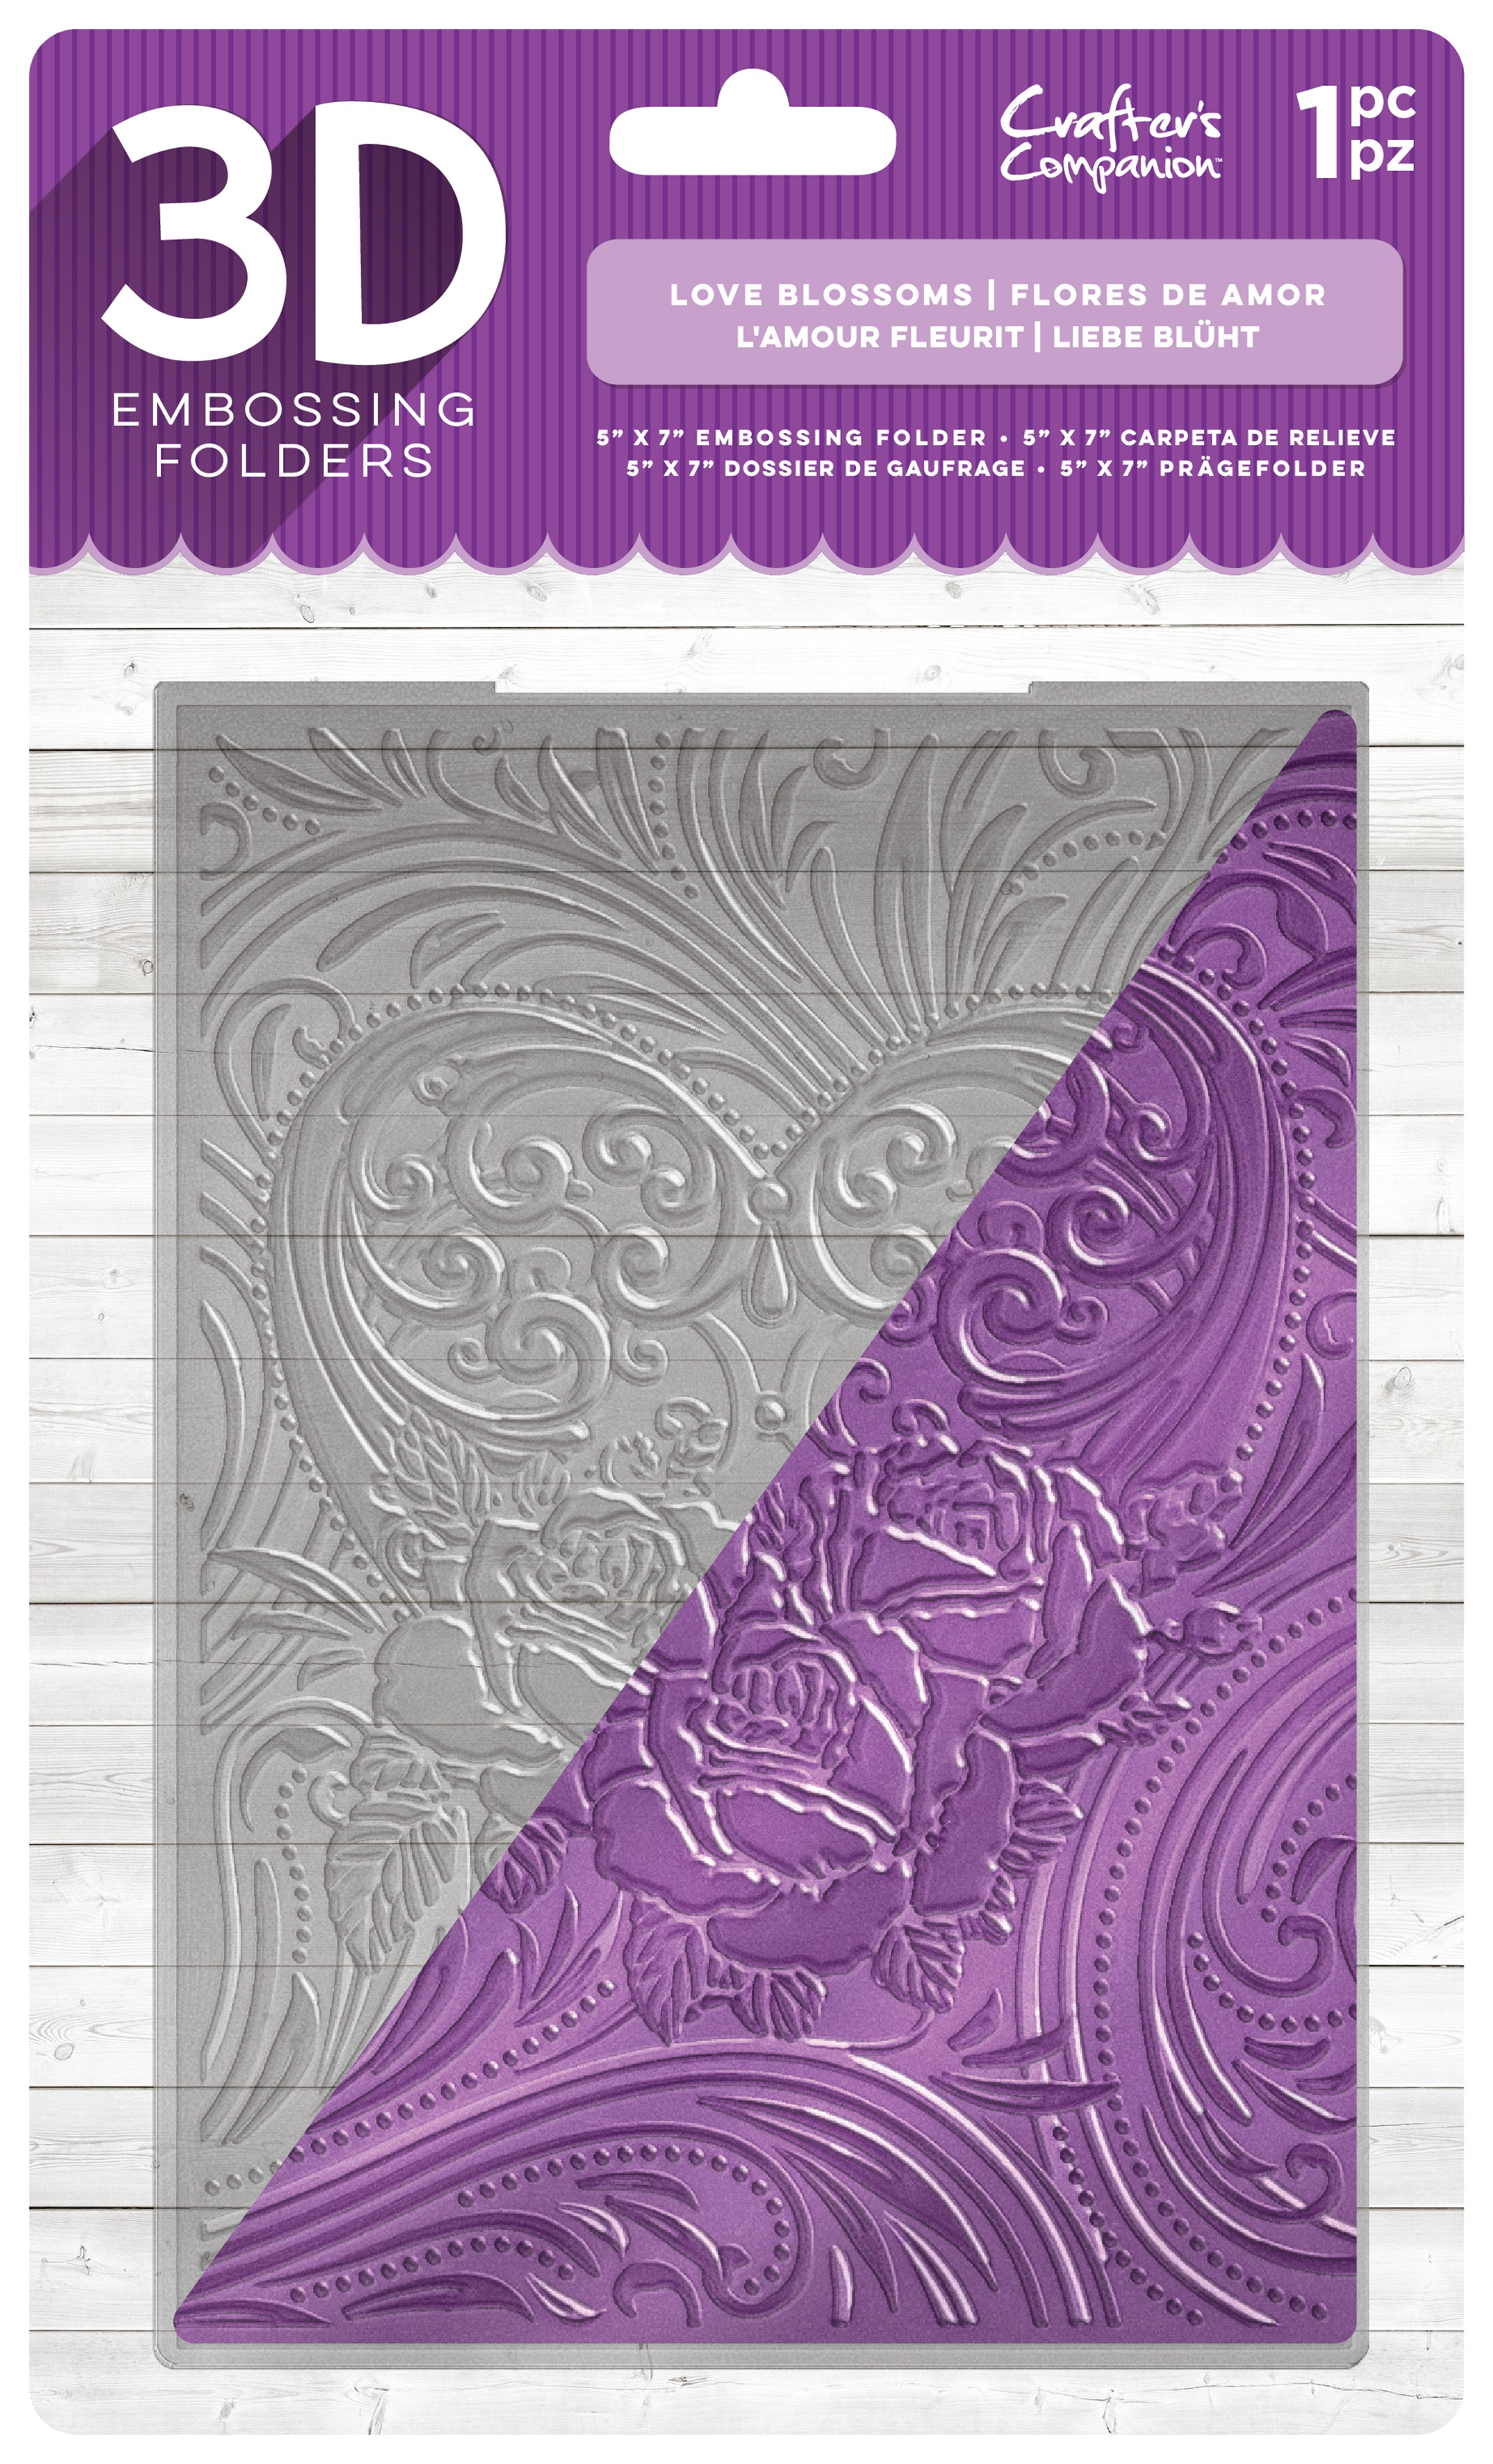 Crafter's Companion 3D Embossing Folder 5X7-Love Blossoms